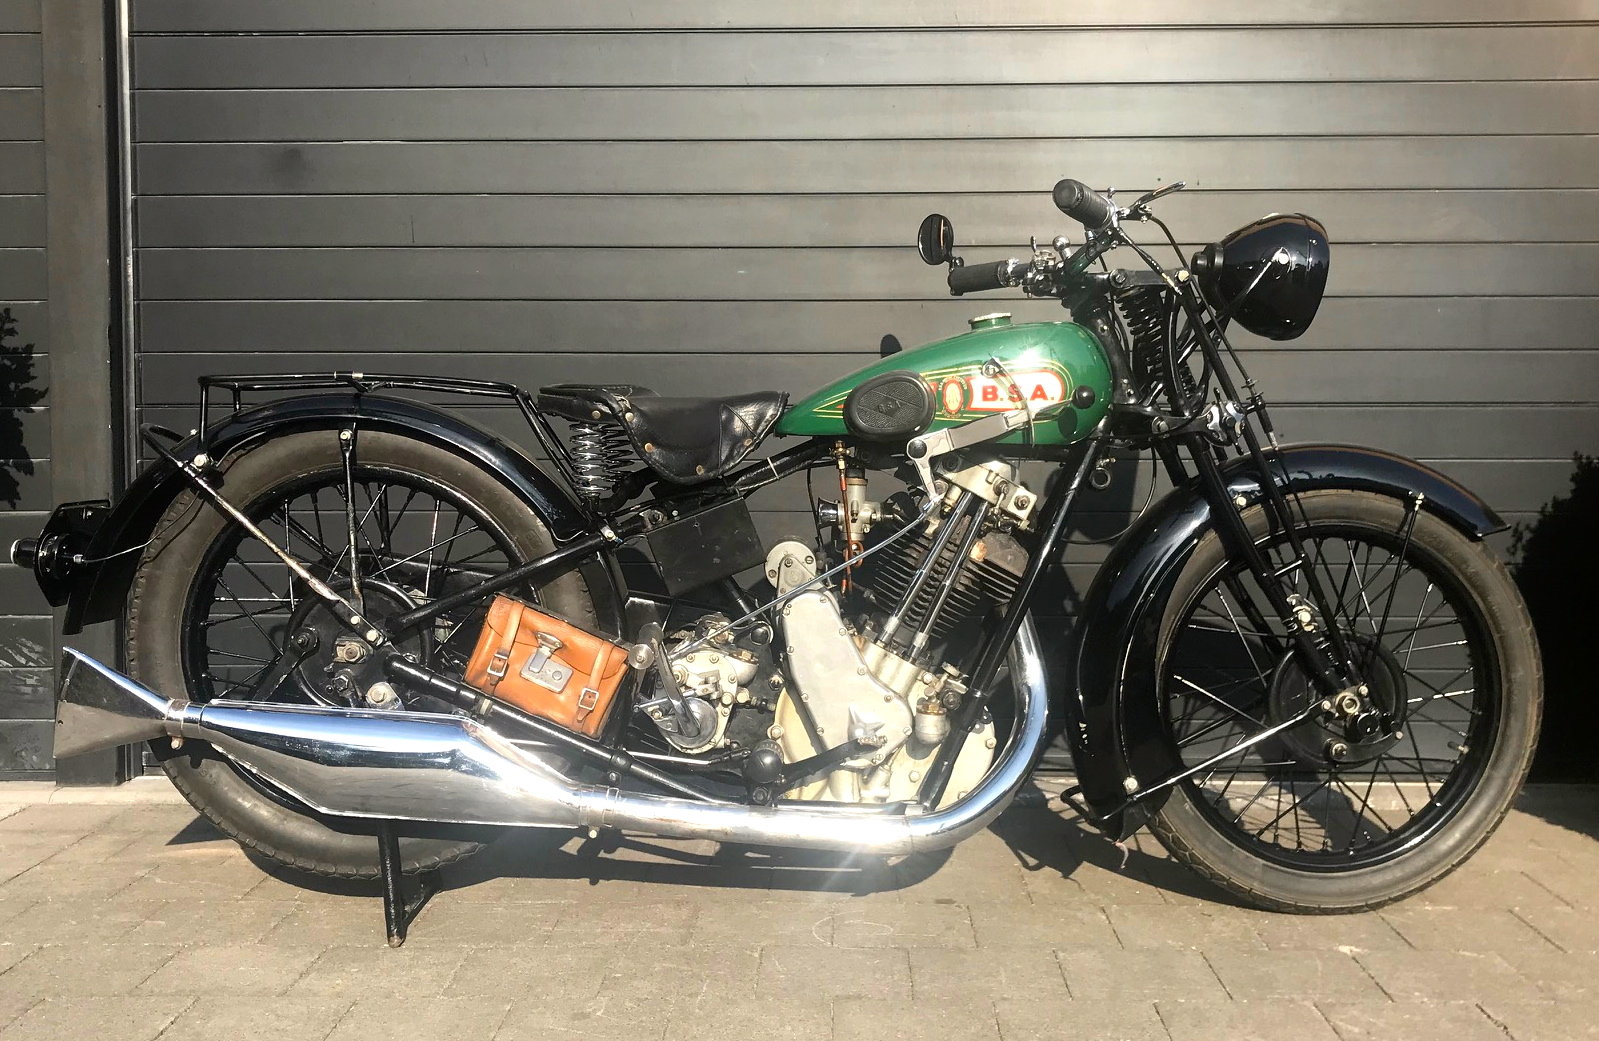 1929 BSA - 29S   500cc OHV sloper For Sale (picture 1 of 6)